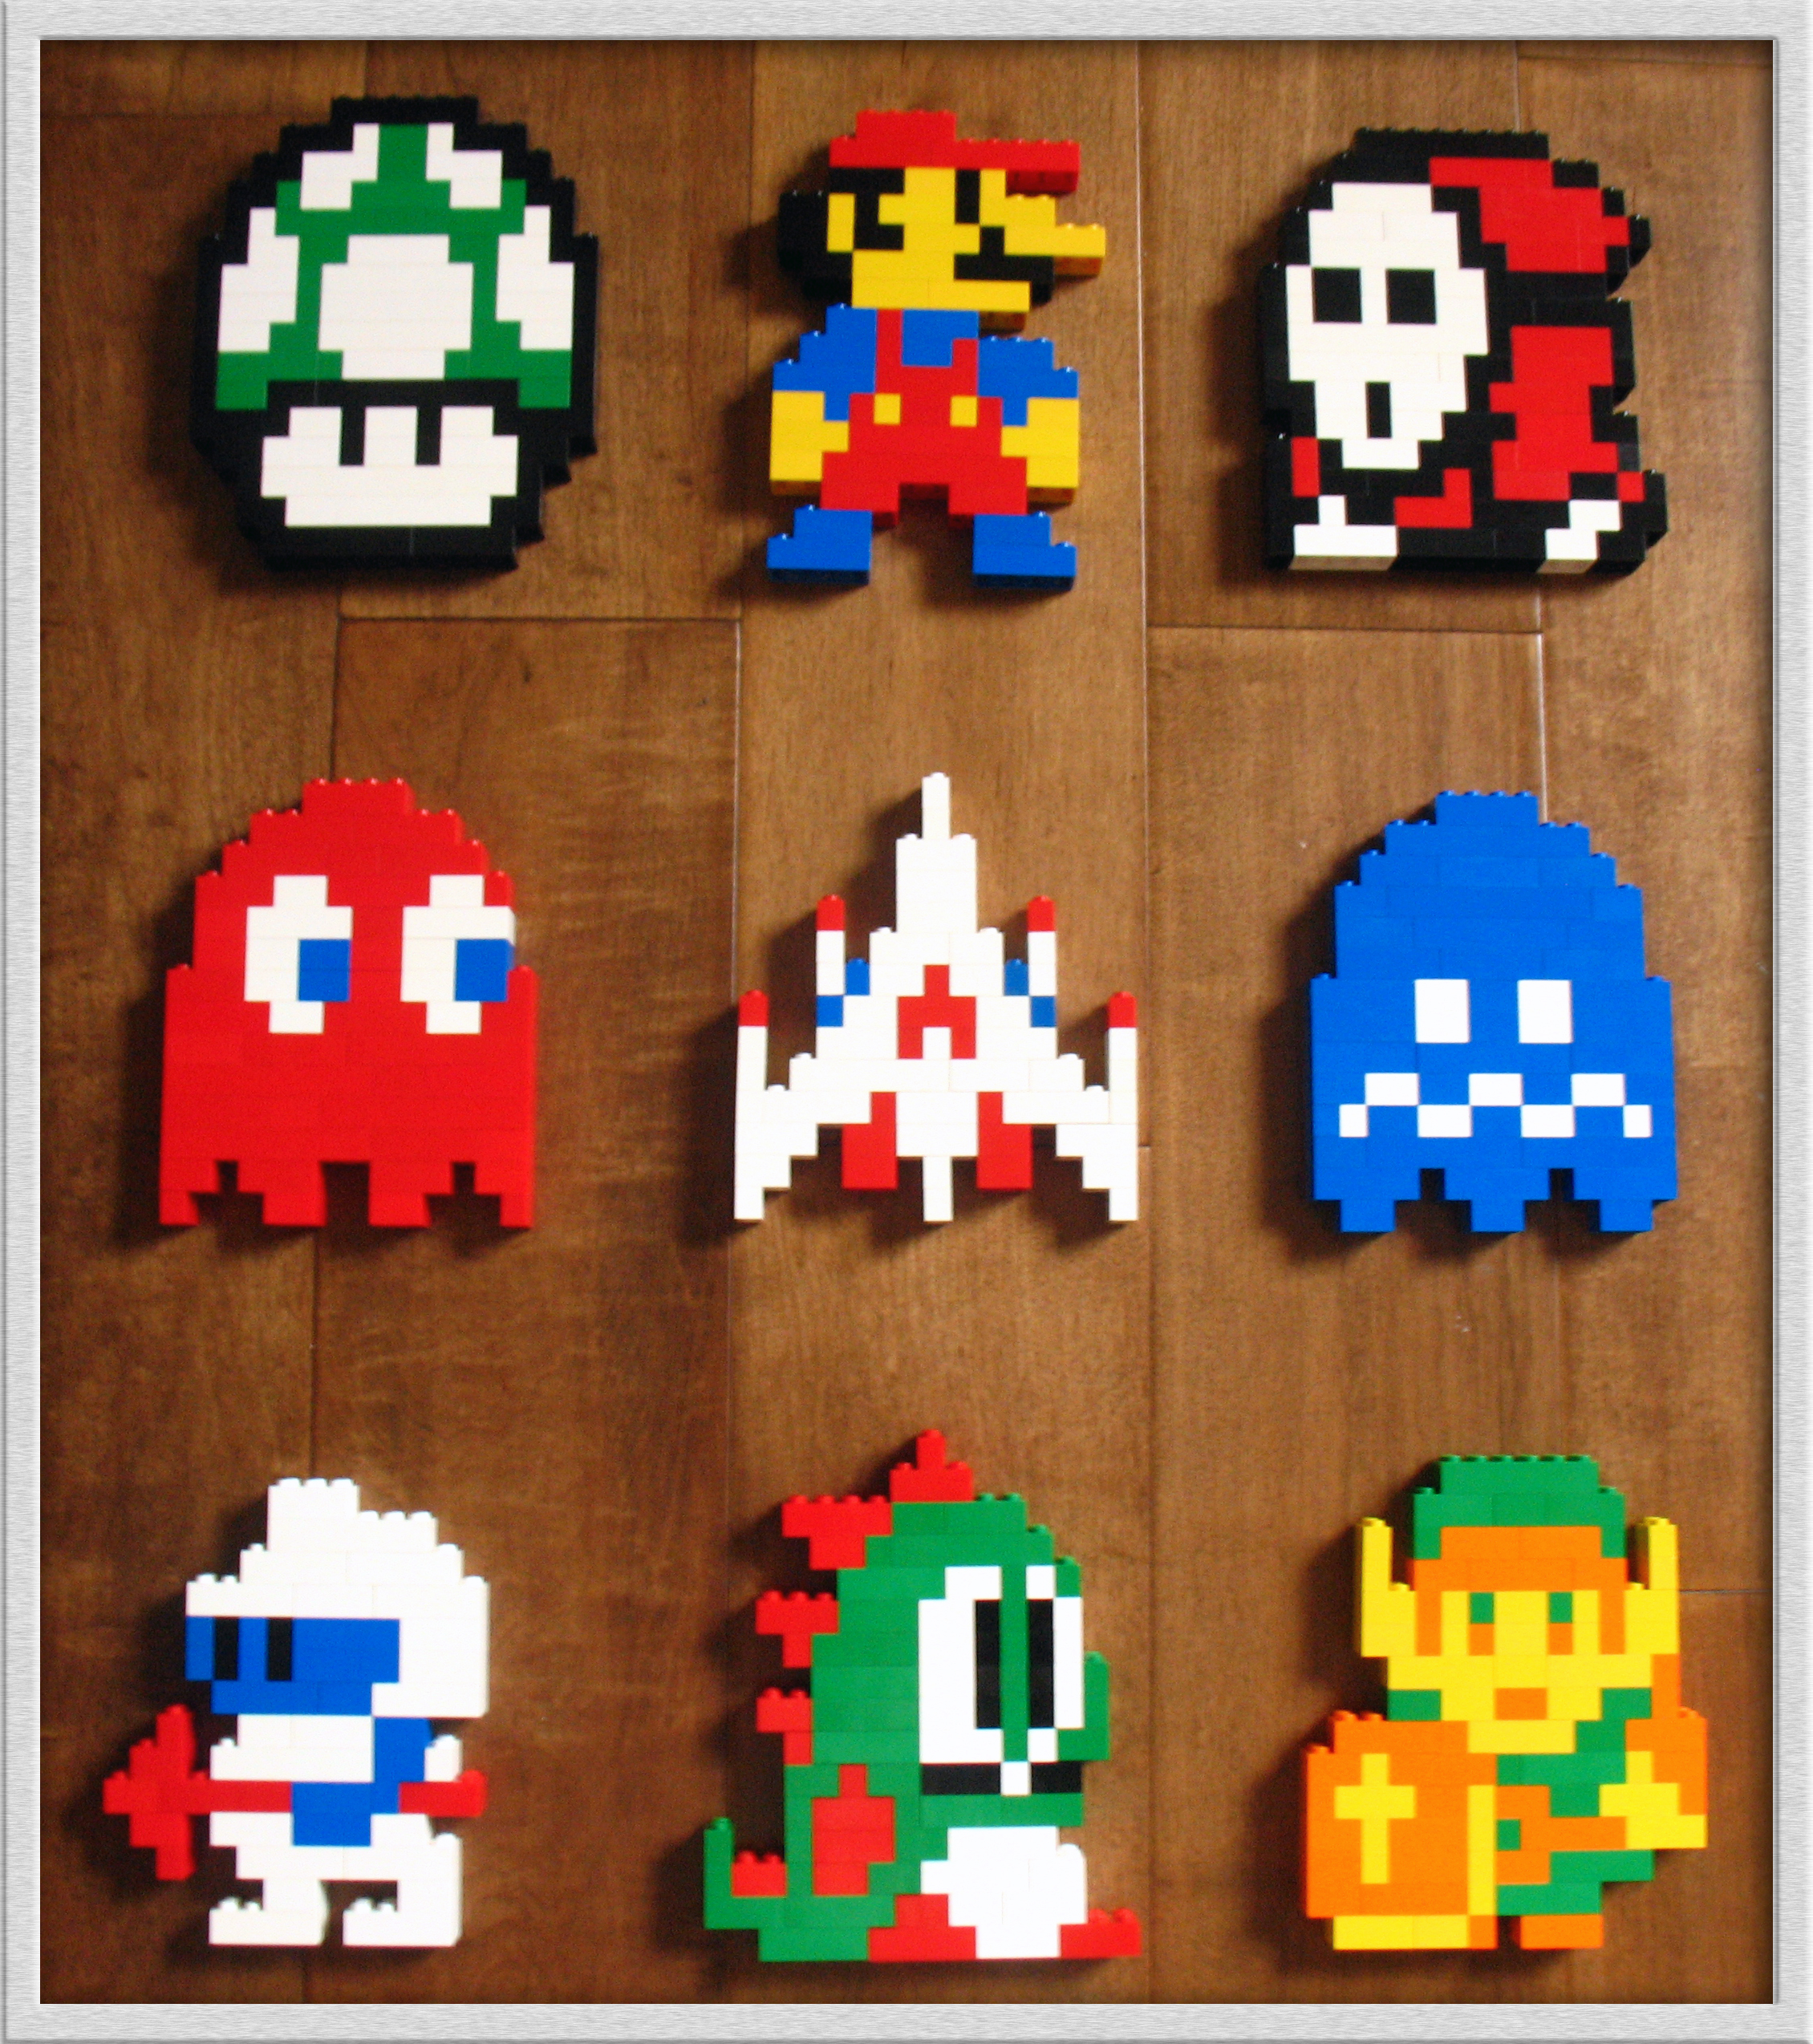 8-Bit Lego Heroes by jamesthe4